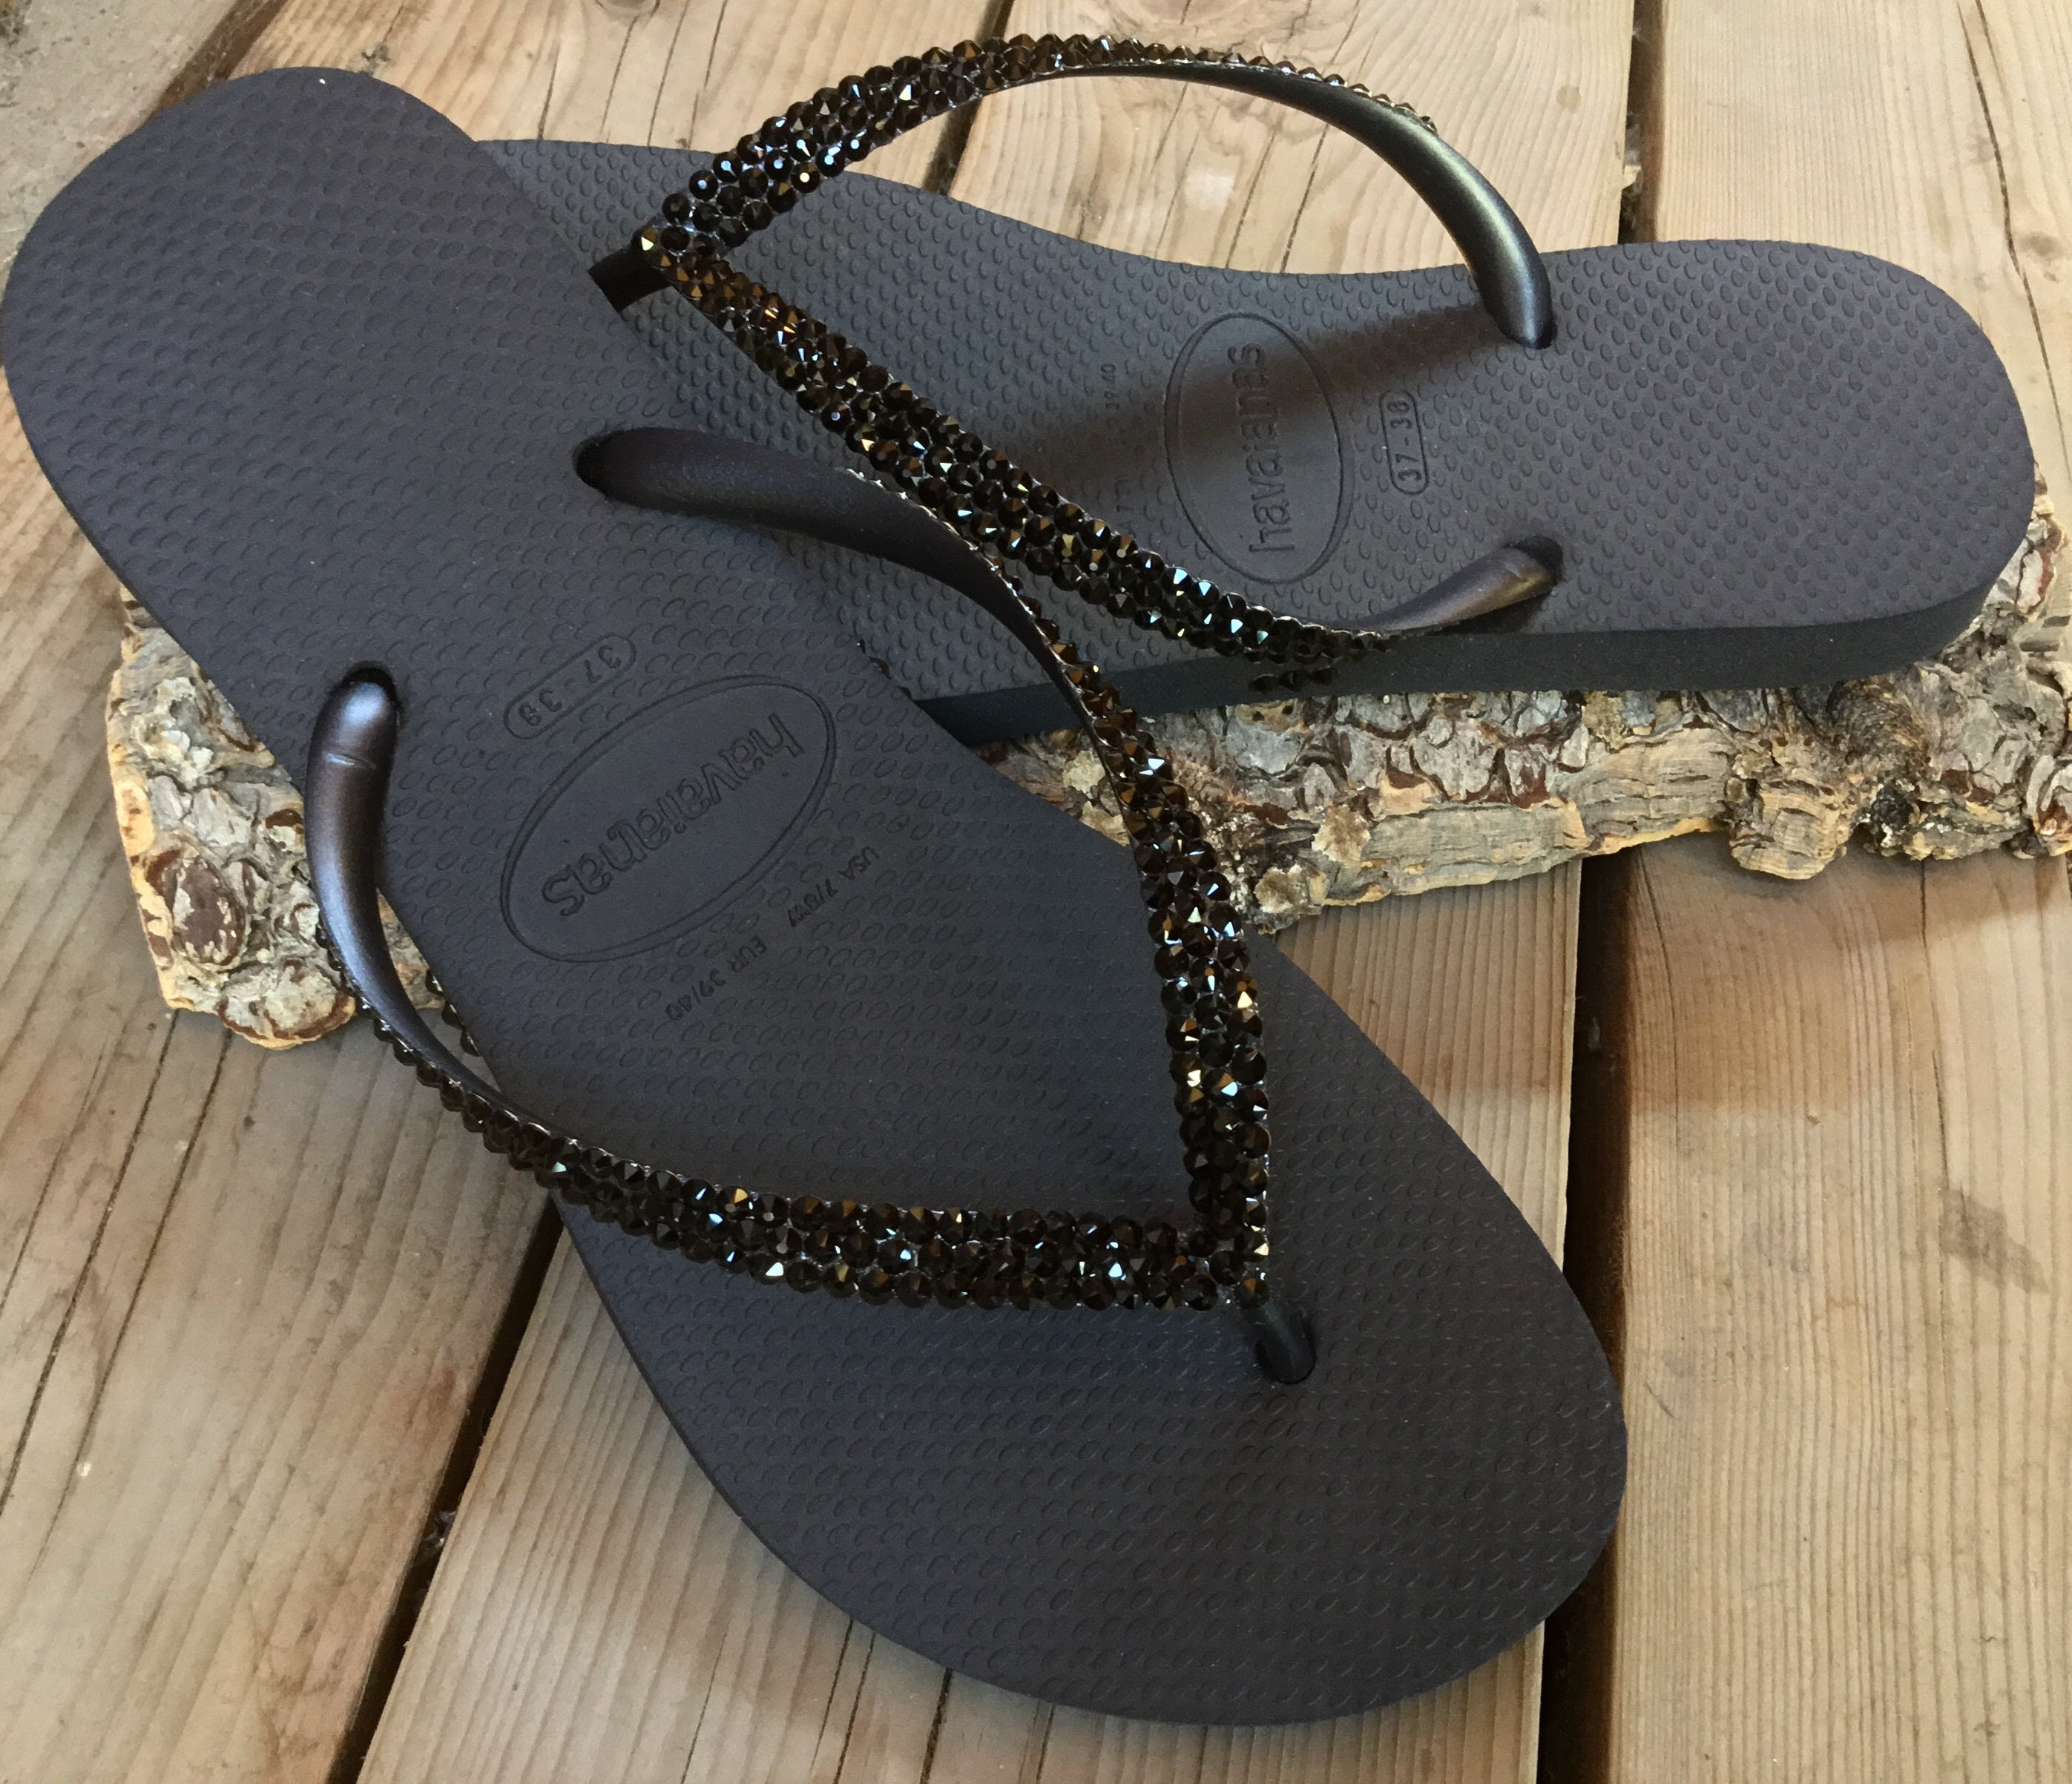 3772e5c43 Custom Black Havaianas Slim or Cariris flat Flip Flops w  Swarovski Crystal  Jewels Beach Cruise Thongs Vacation Rhinestone Reception Shoe